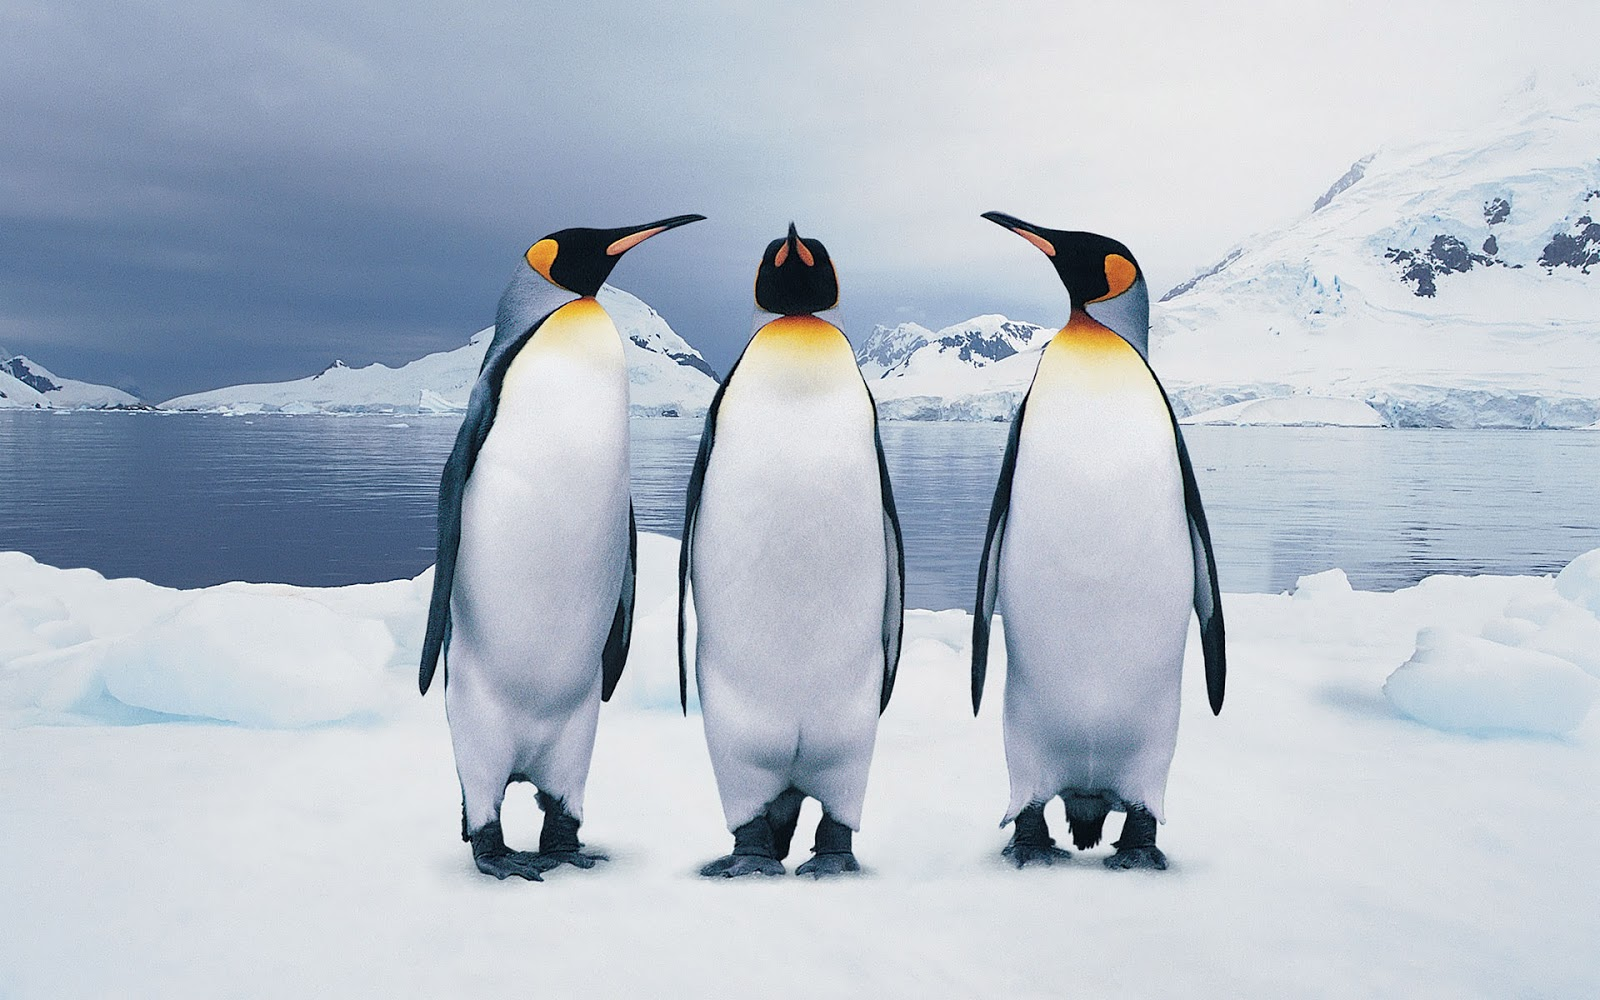 King Penguins Wallpaper and Background Image 1600x1000 ID 1600x1000